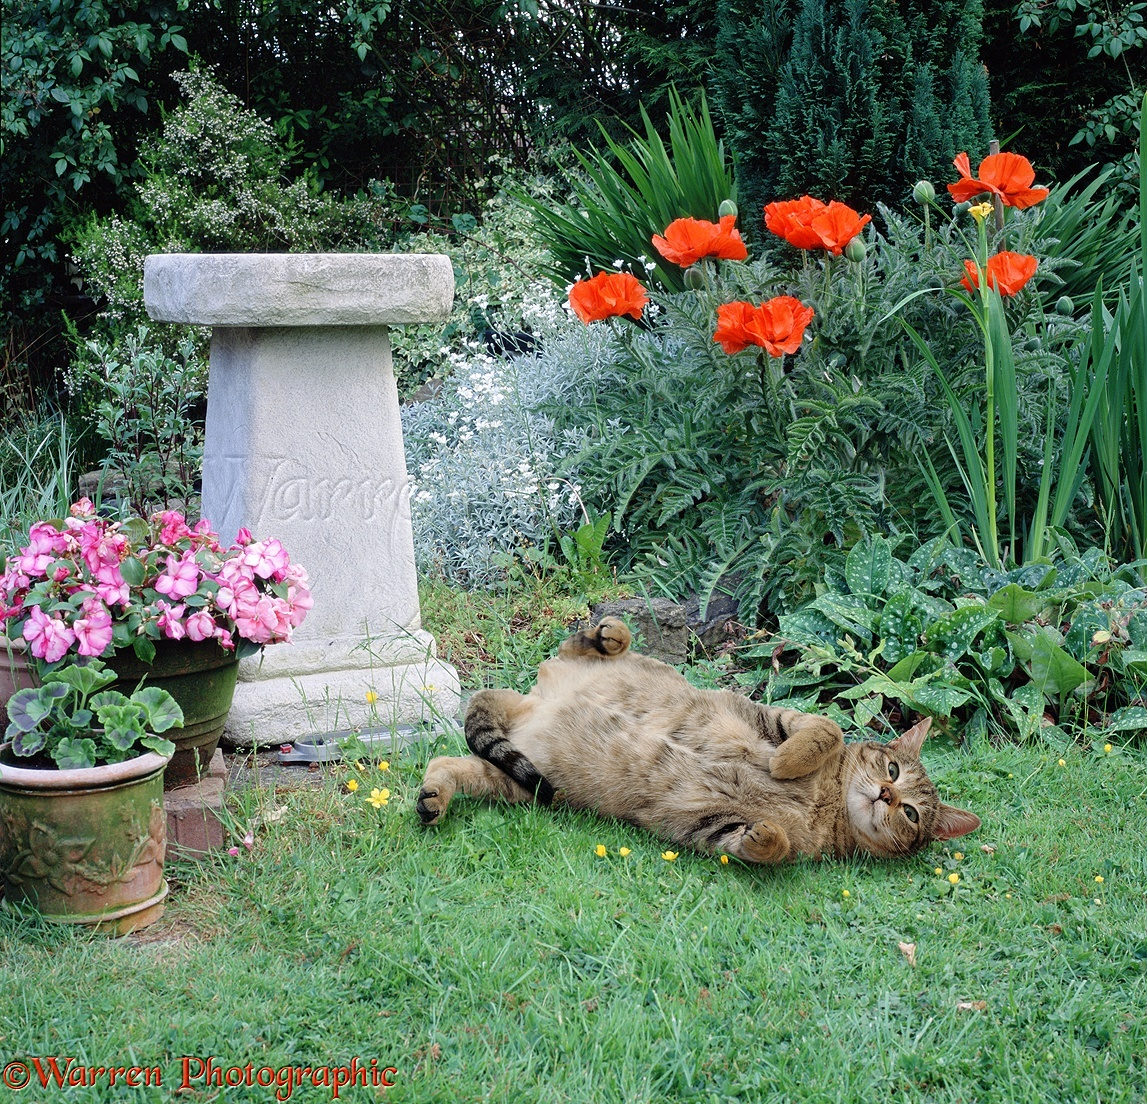 A Happy Tabby Cat Rolling On A Garden Lawn